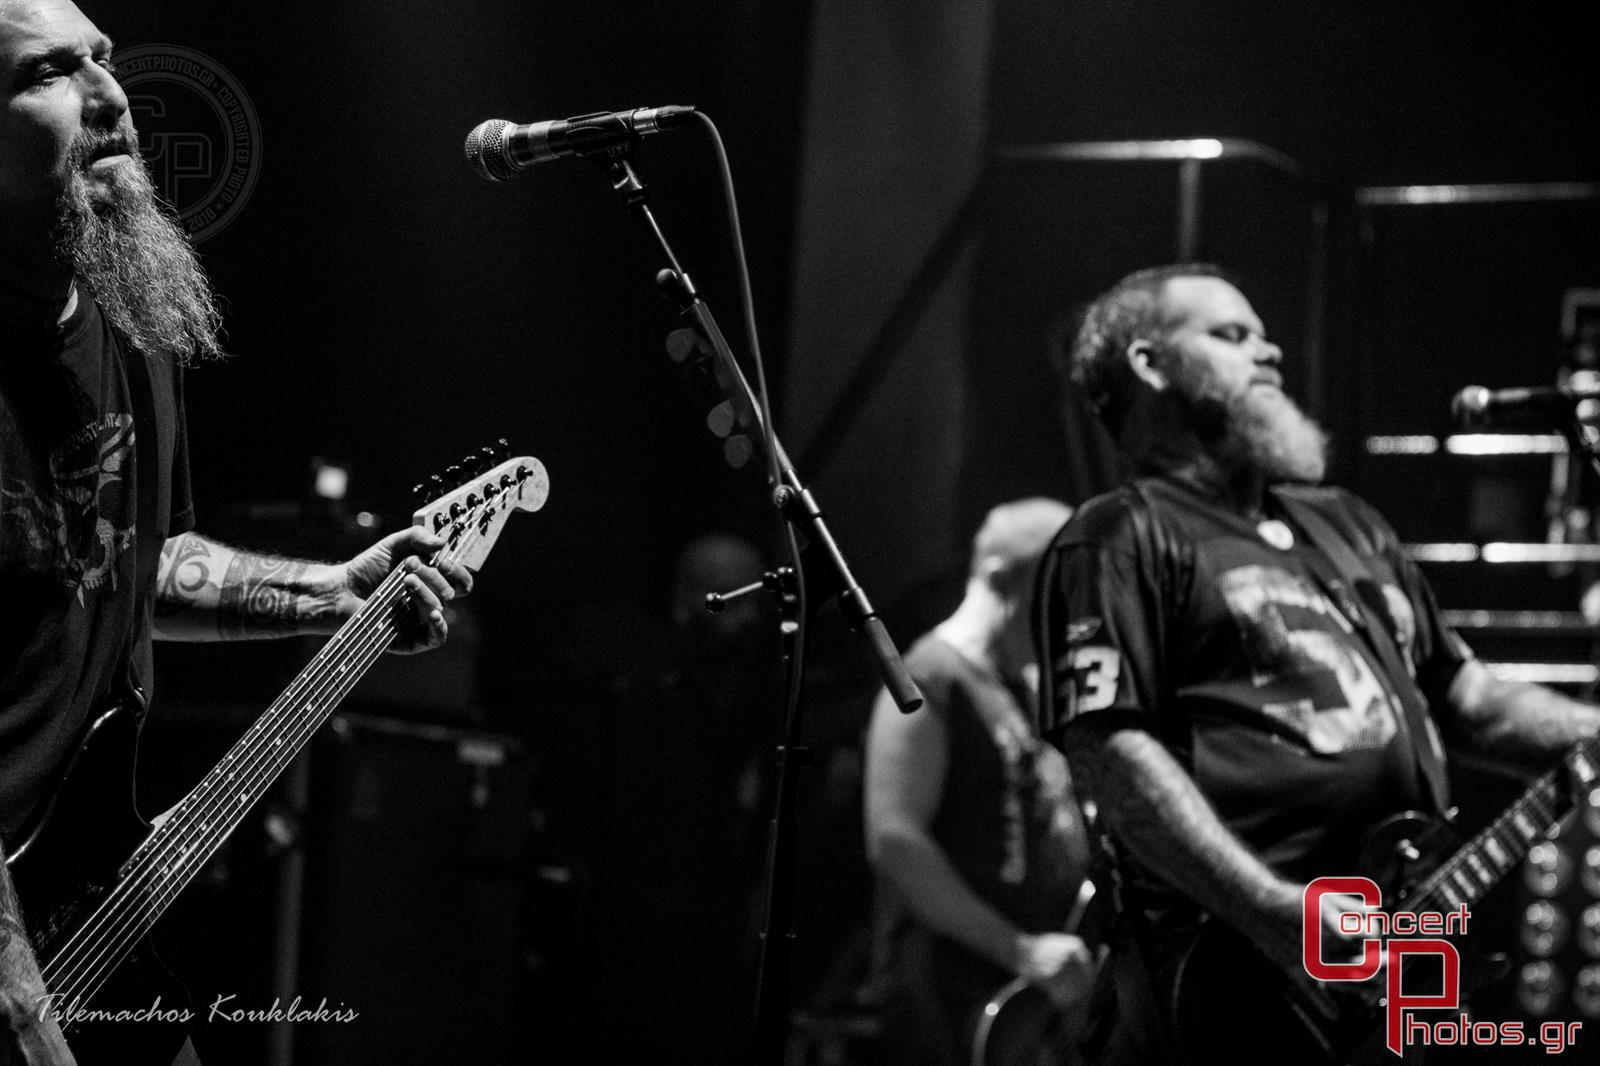 Neurosis-Neurosis photographer:  - concertphotos_20140707_23_56_51